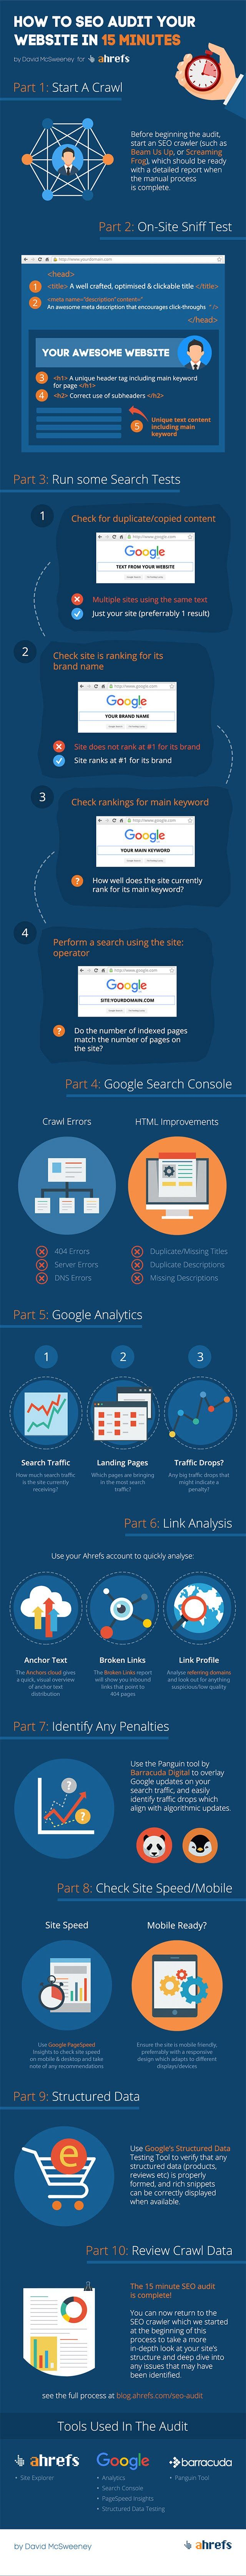 How To SEO Audit Your Website In 15 Minutes - #infographic